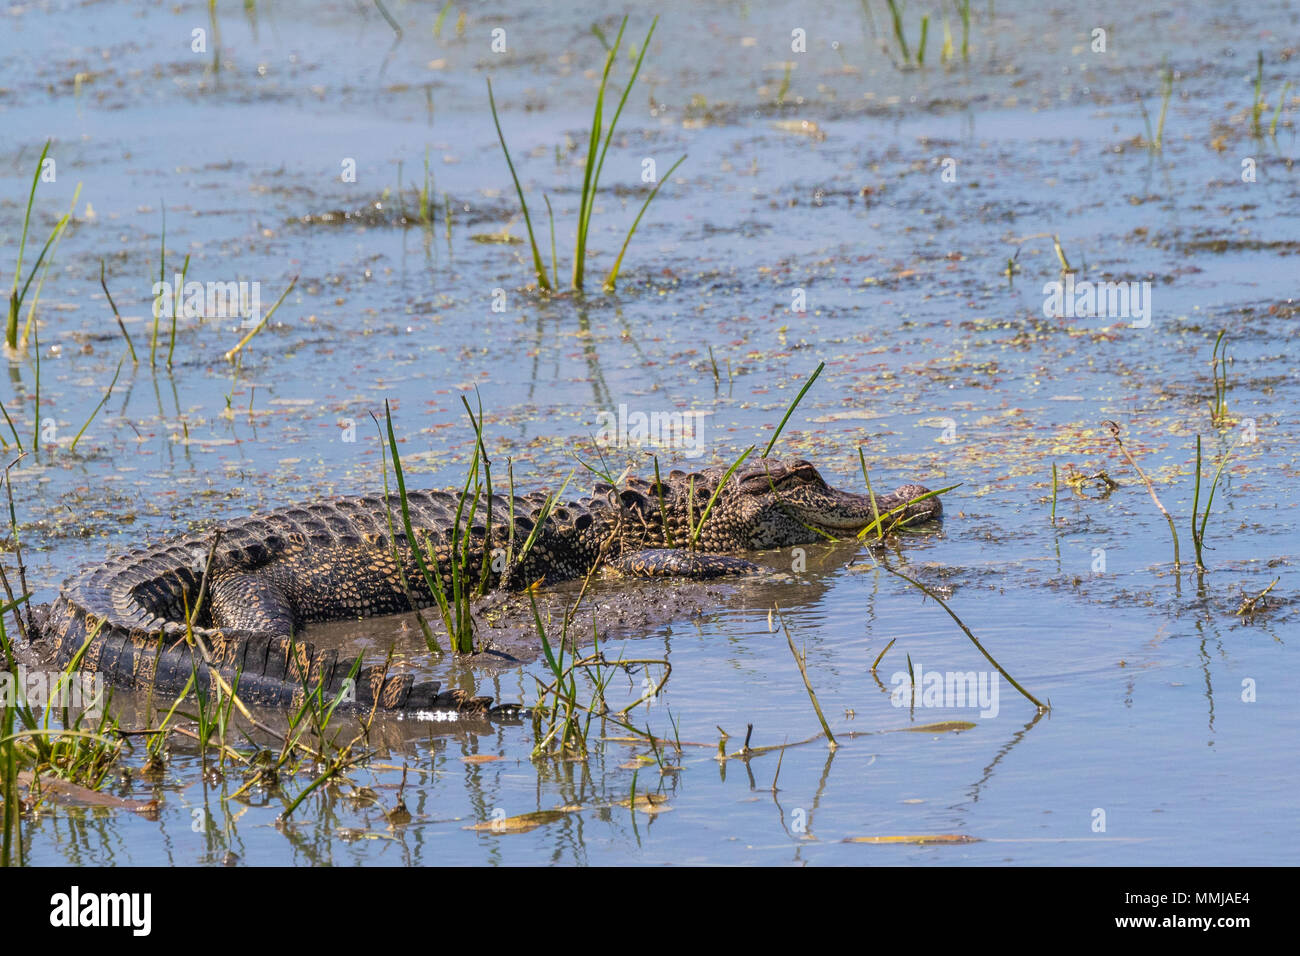 American Alligator lurking in Shoveler's Pond at Anahuac National Wildlife Refuge in Southeastern Texas. - Stock Image